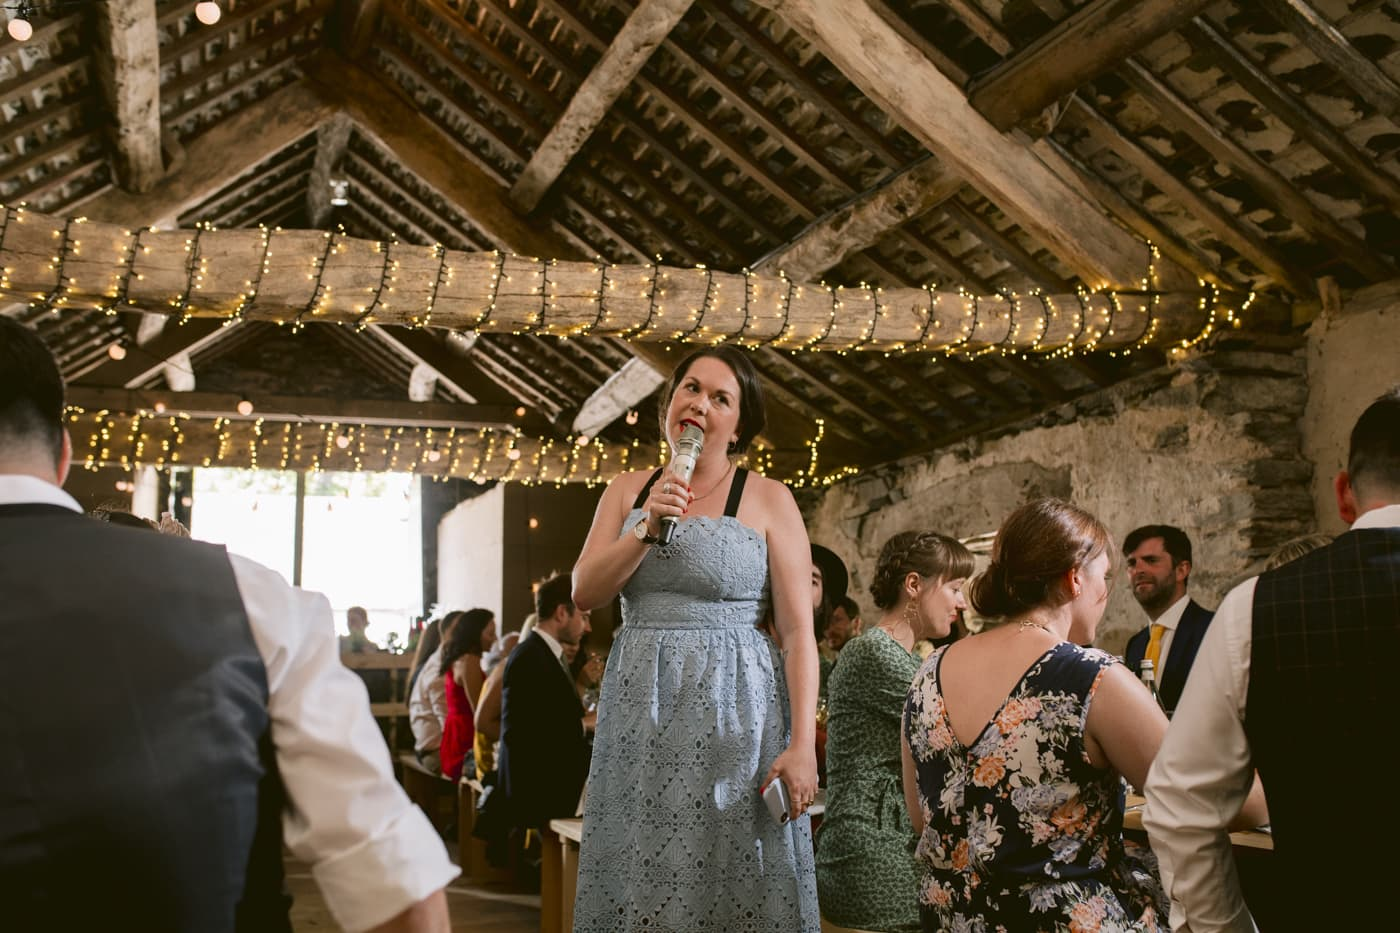 Guests and guest singing indoors, Portrait Shooting